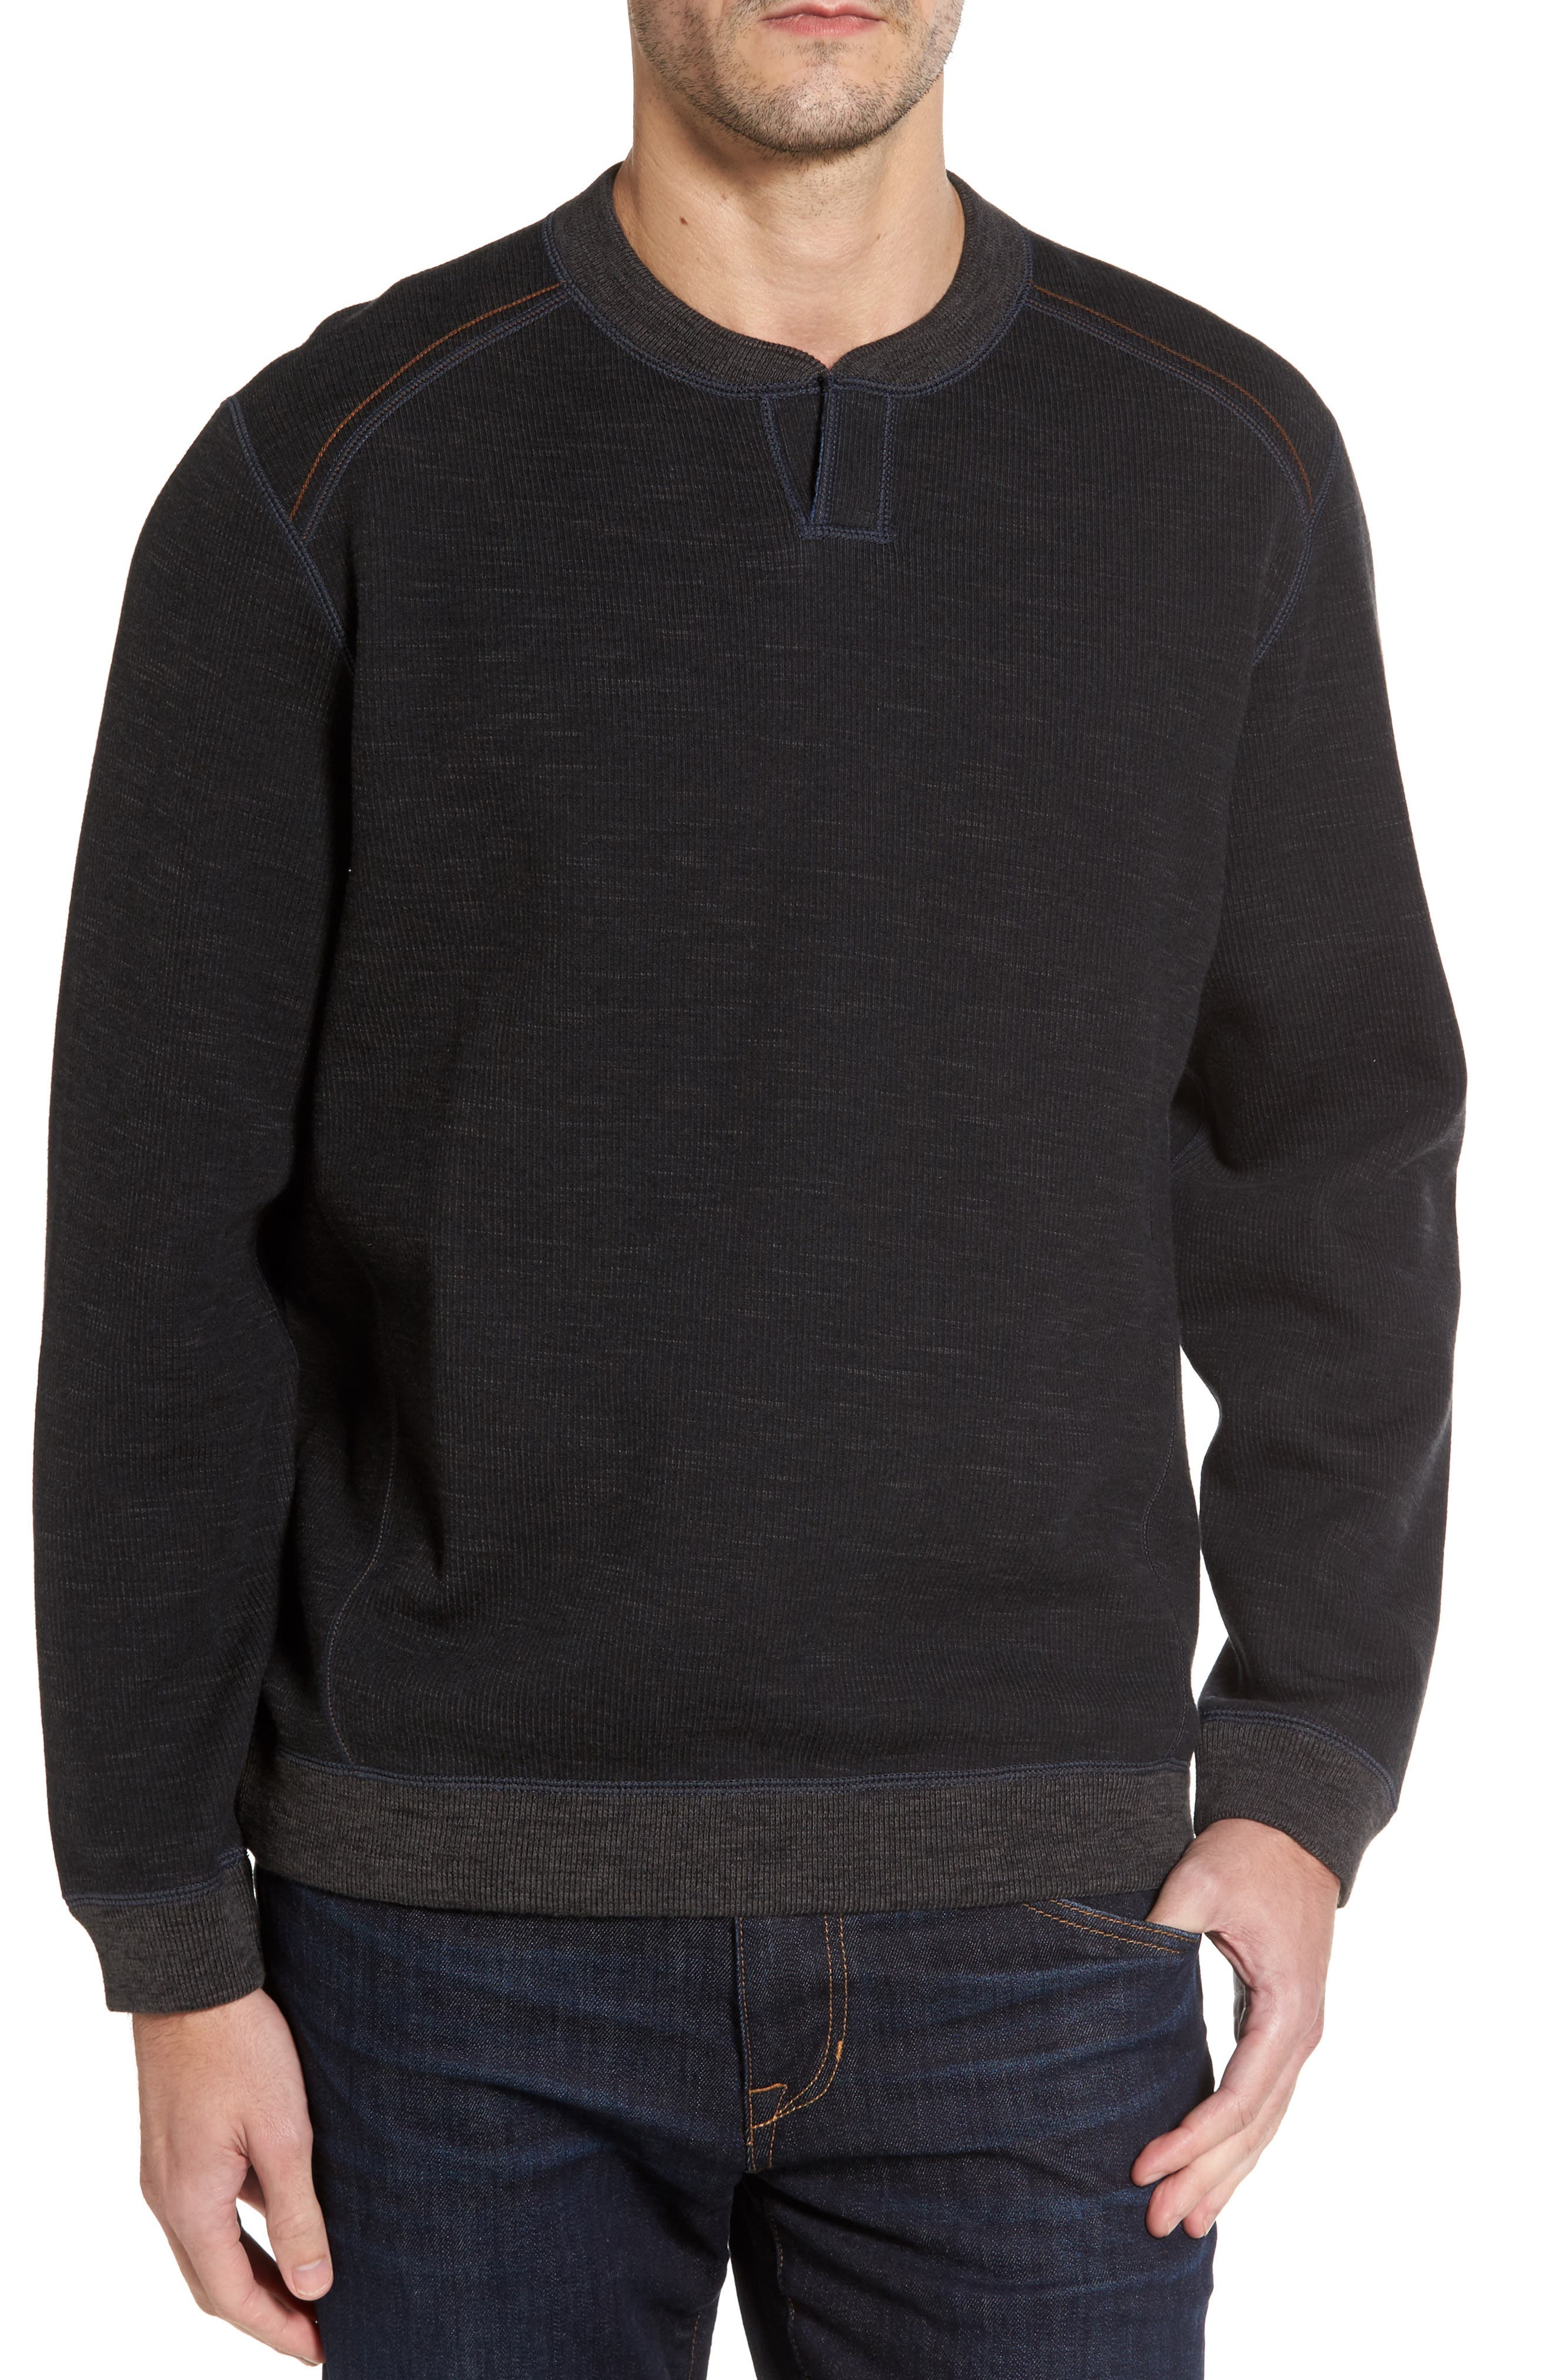 Flipsider Abaco Pullover,                             Main thumbnail 1, color,